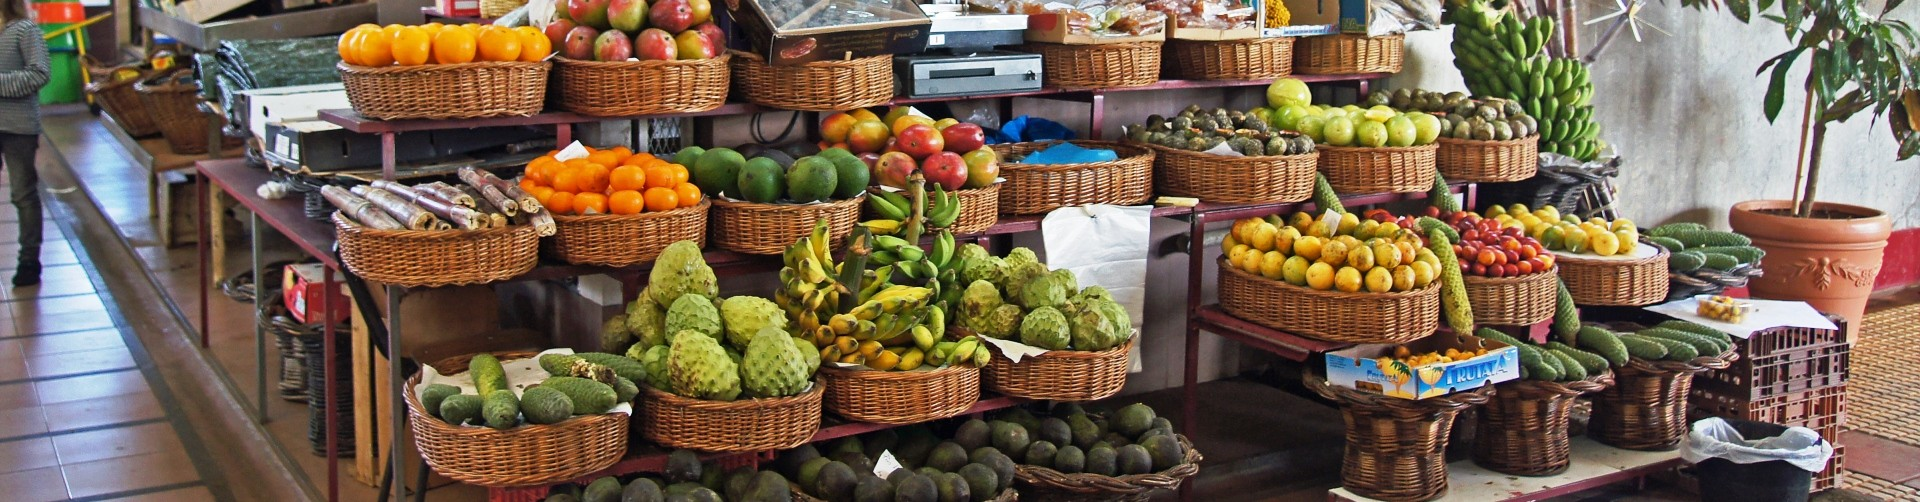 Farmers Market in Funchal, Madeira